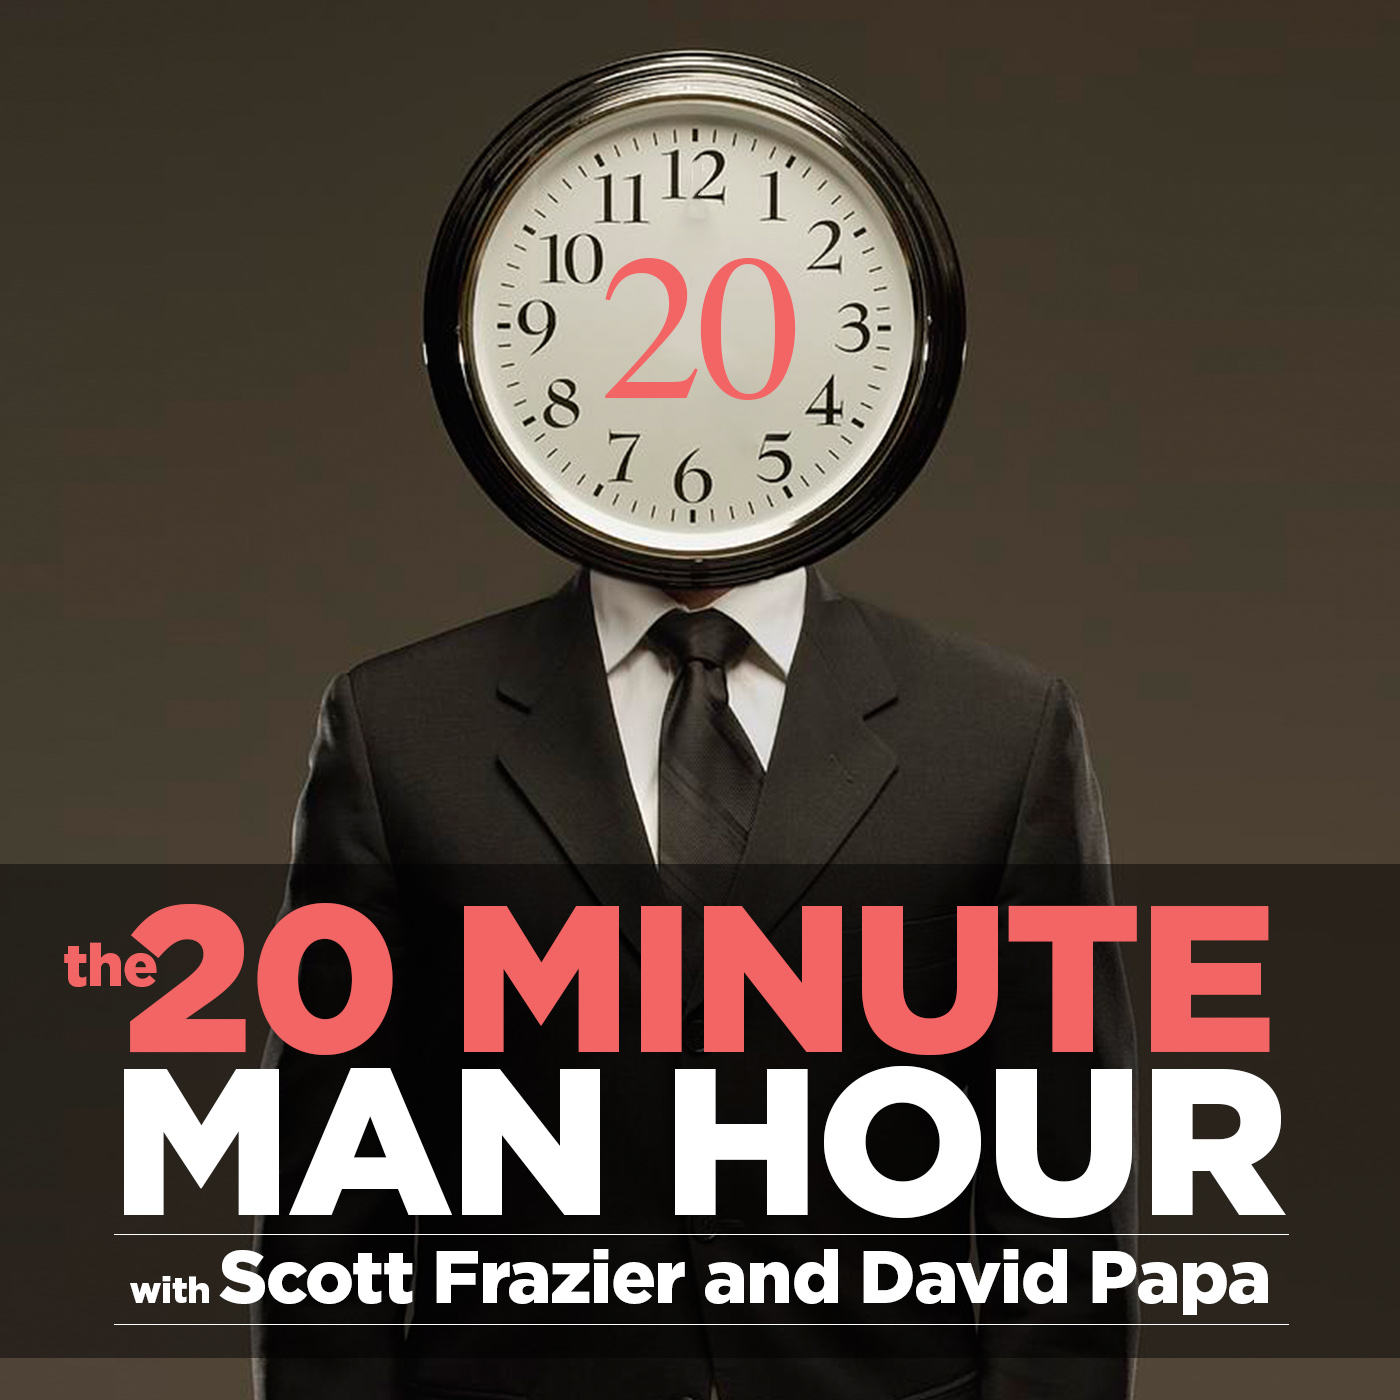 The 20 Minute Man Hour